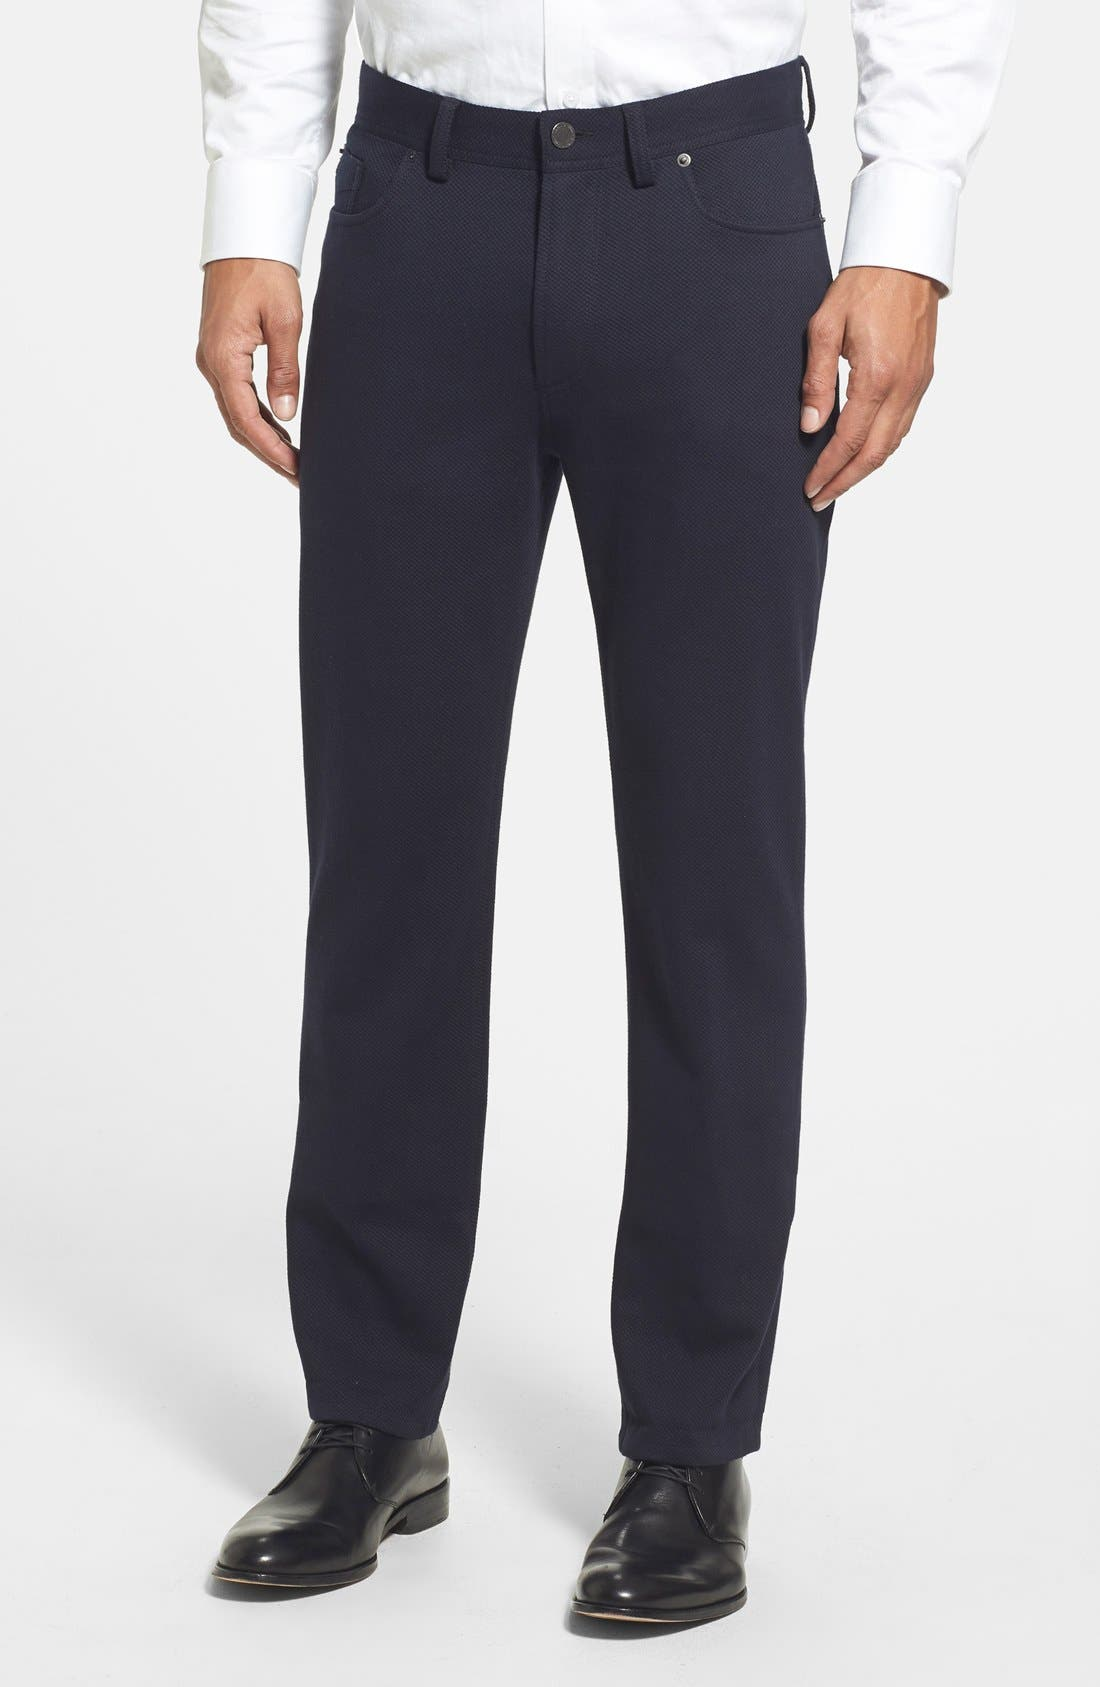 Straight Leg Five Pocket Stretch Pants,                         Main,                         color, Black Crosshatch